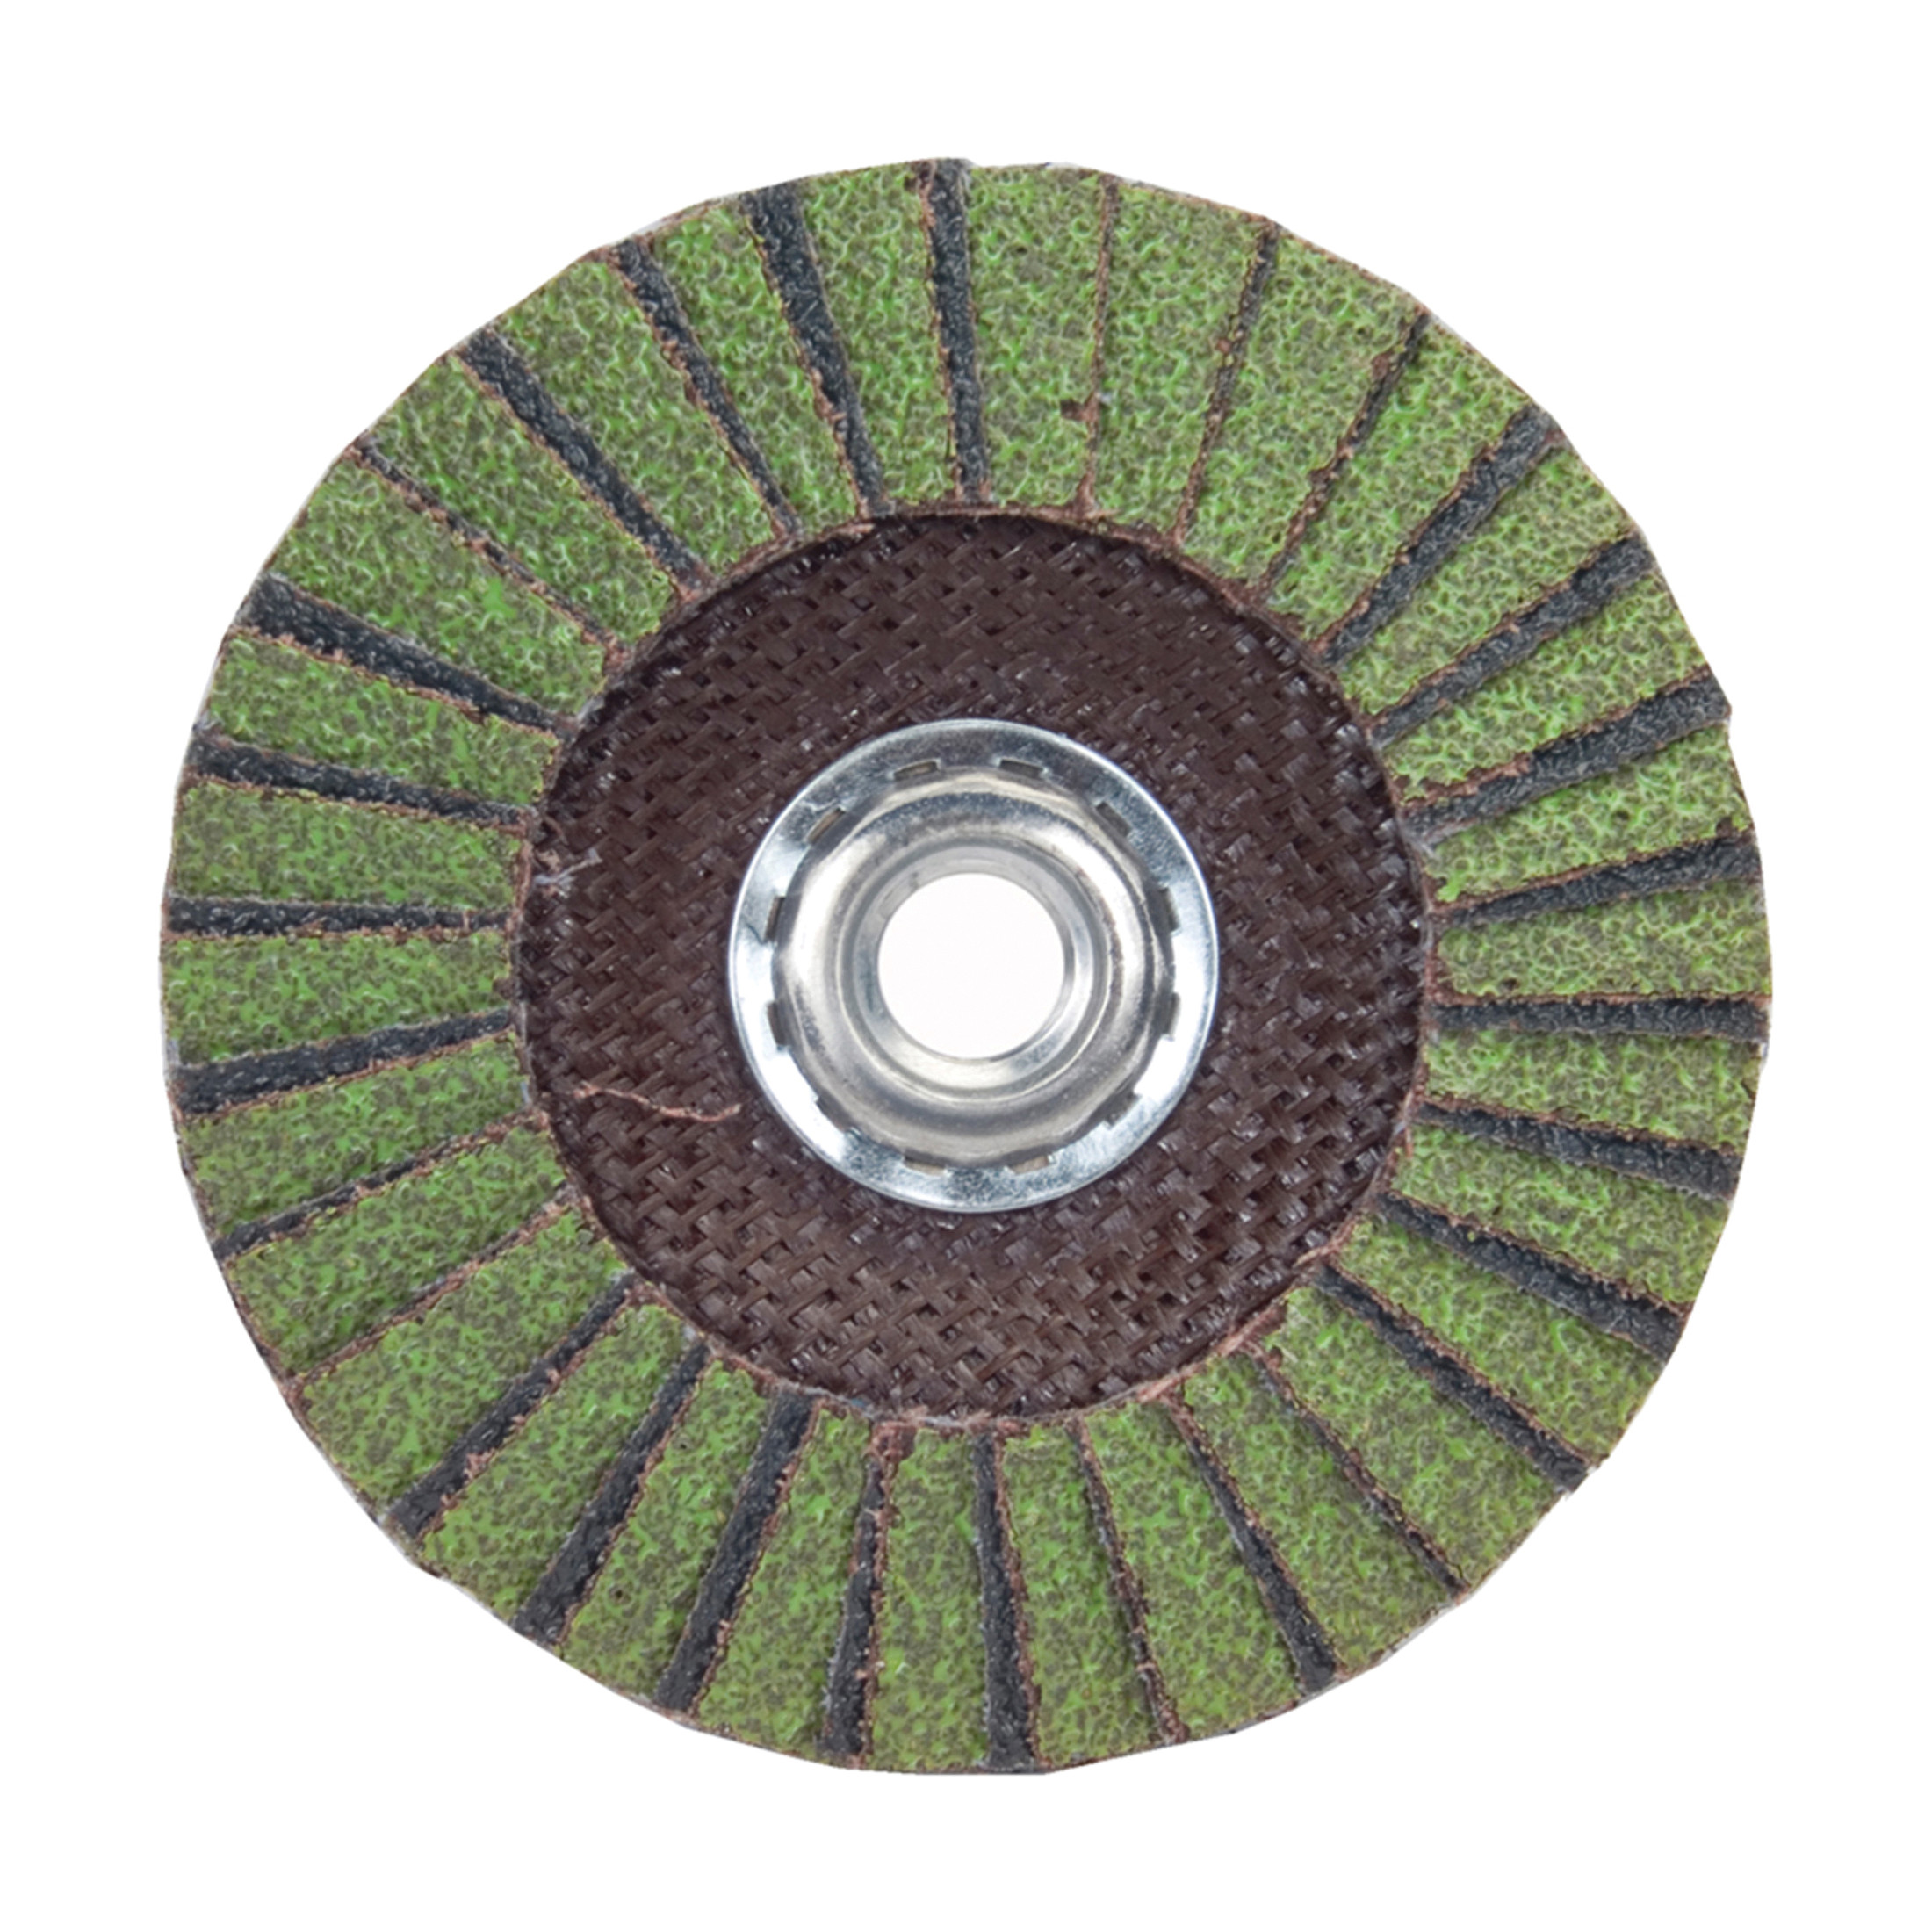 Norton® Neon® 66623399030 Type 29 Conical Coated Flap Disc -  4-1/2 in Dia -  5/8-11 -  60 Grit -  Coarse Grade